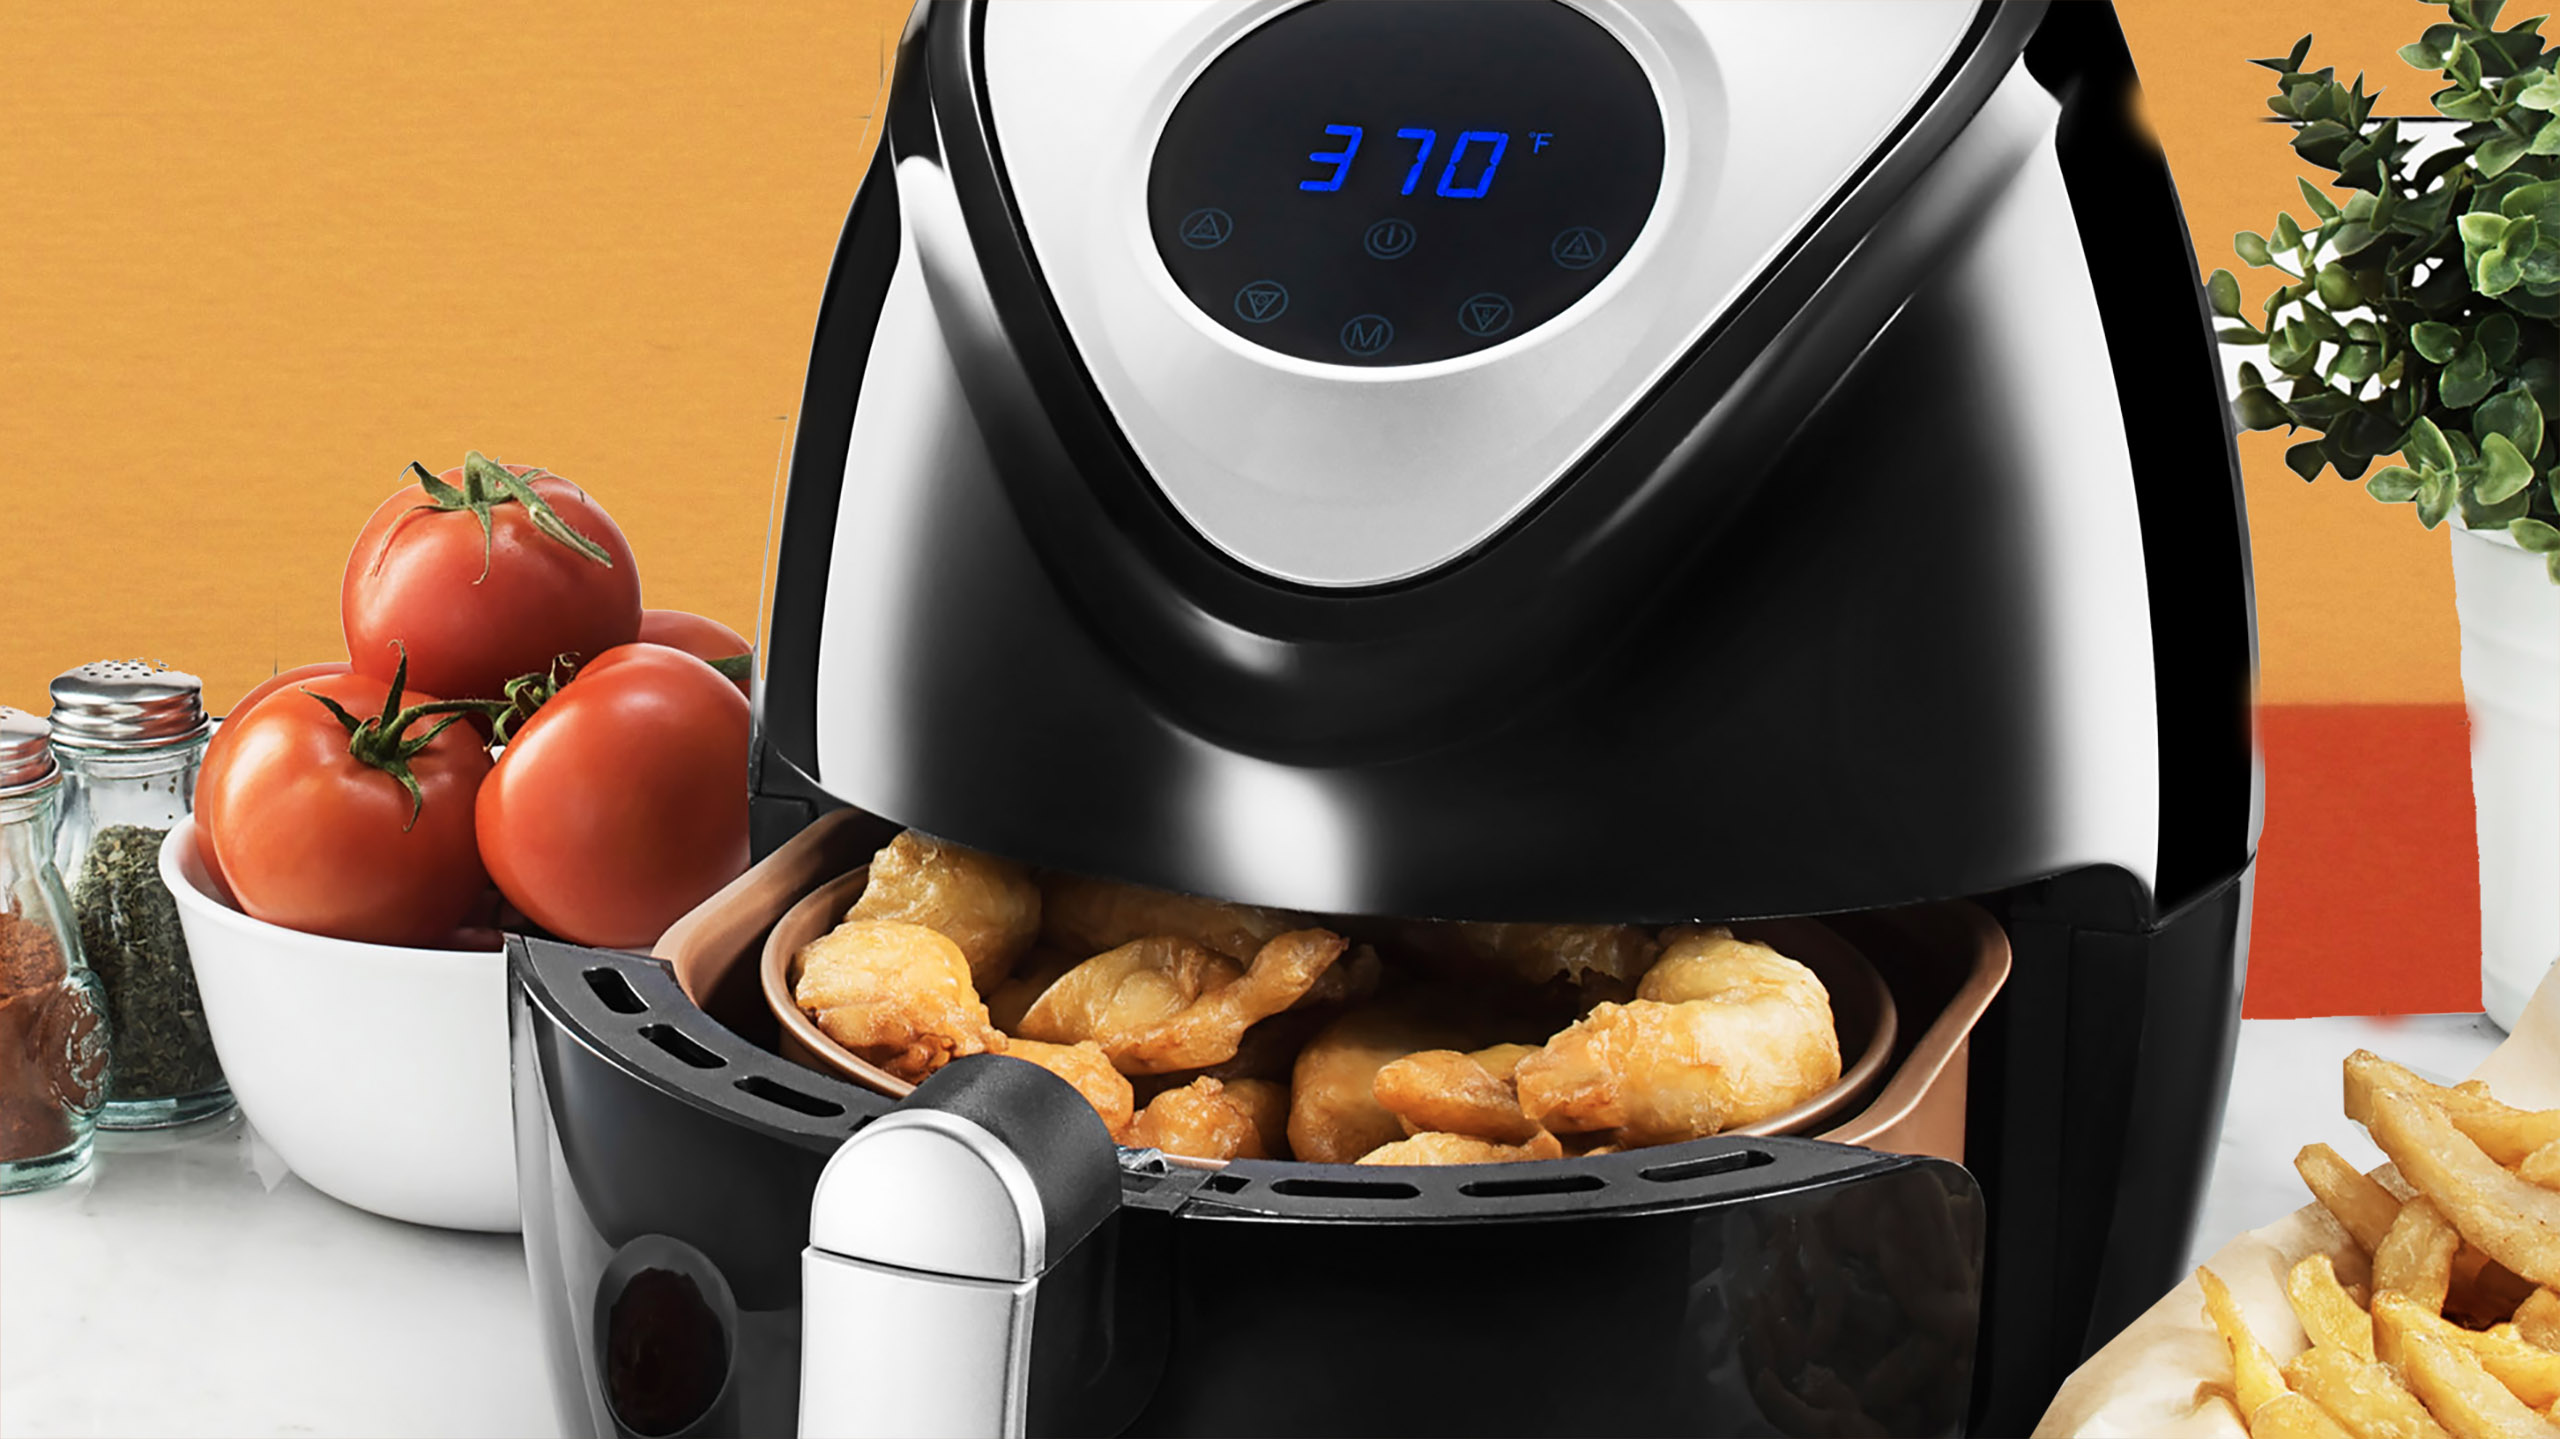 freidora de aire, air fryer, freir con aire